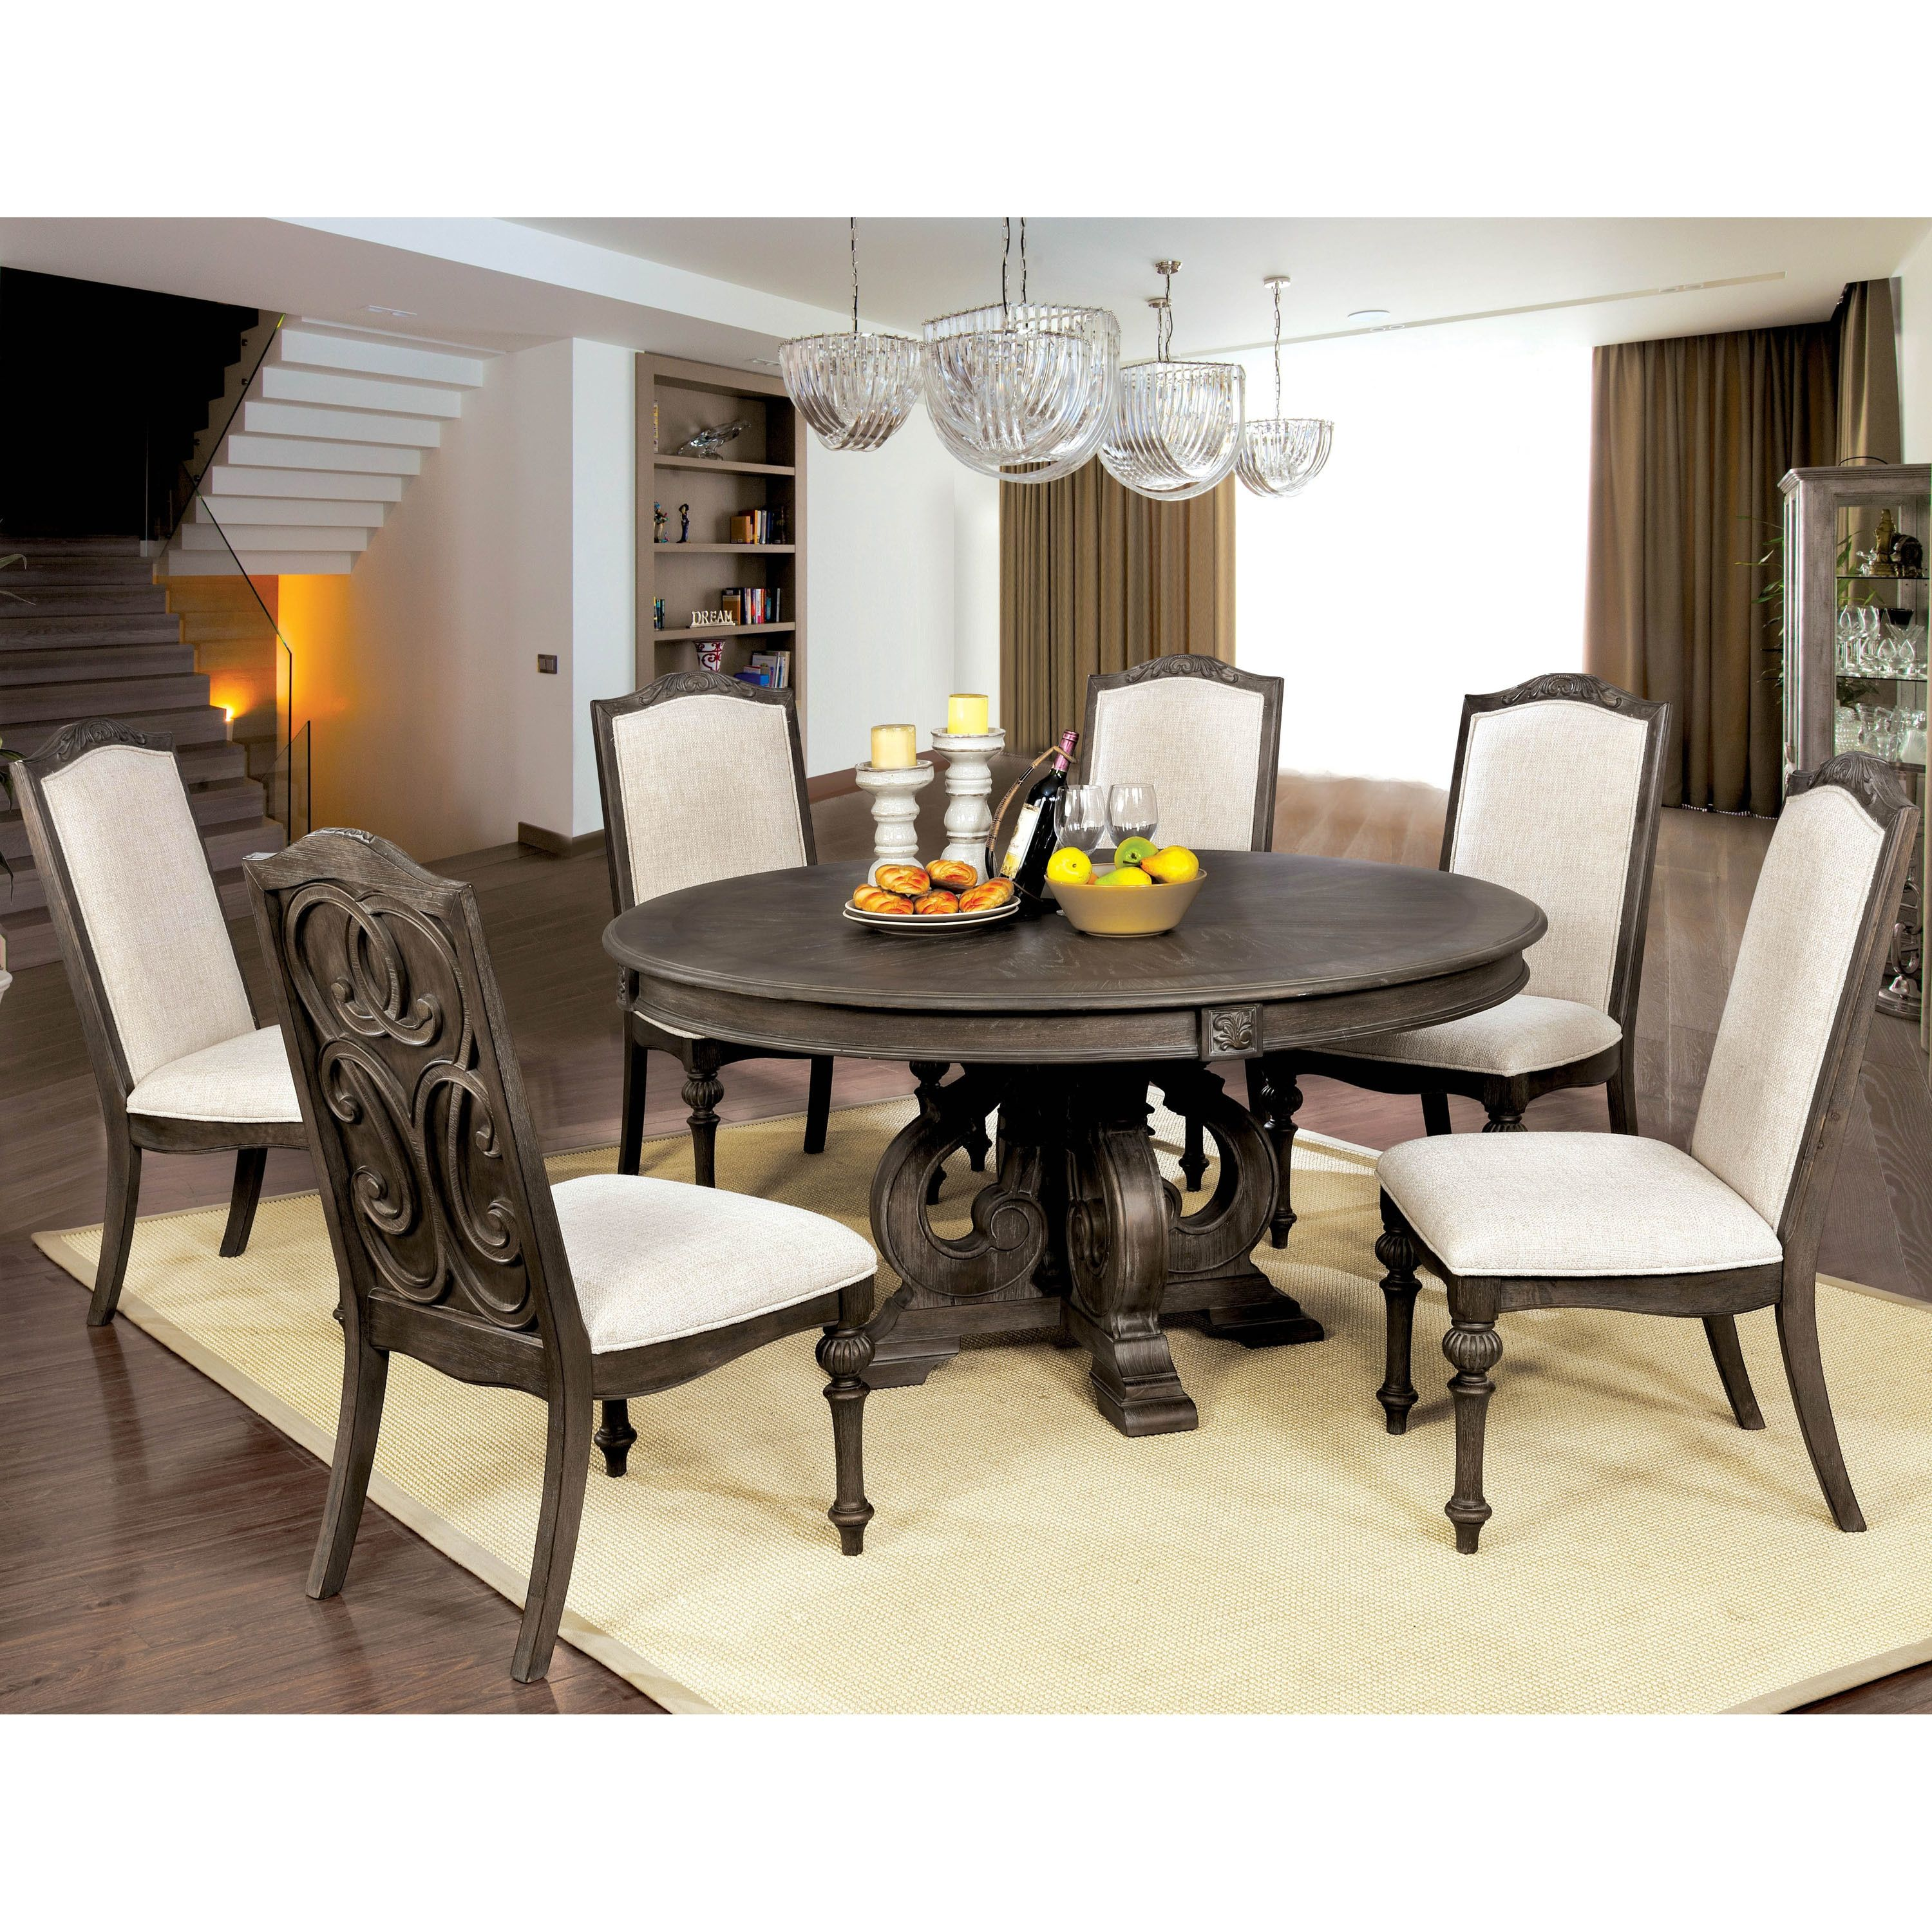 Furniture Of America Leland Rustic 60 Inch Round Dining